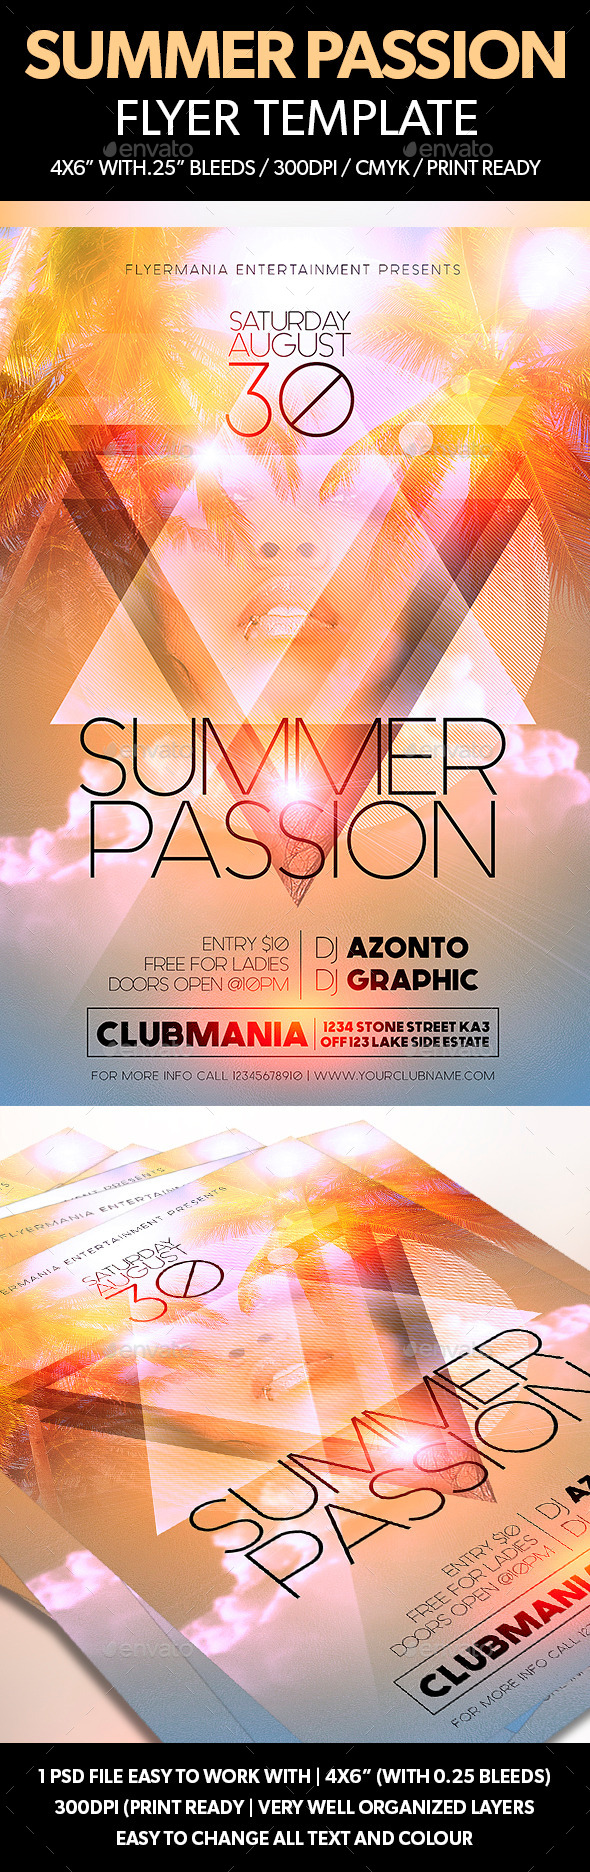 Summer Passion Flyer Template - Clubs & Parties Events